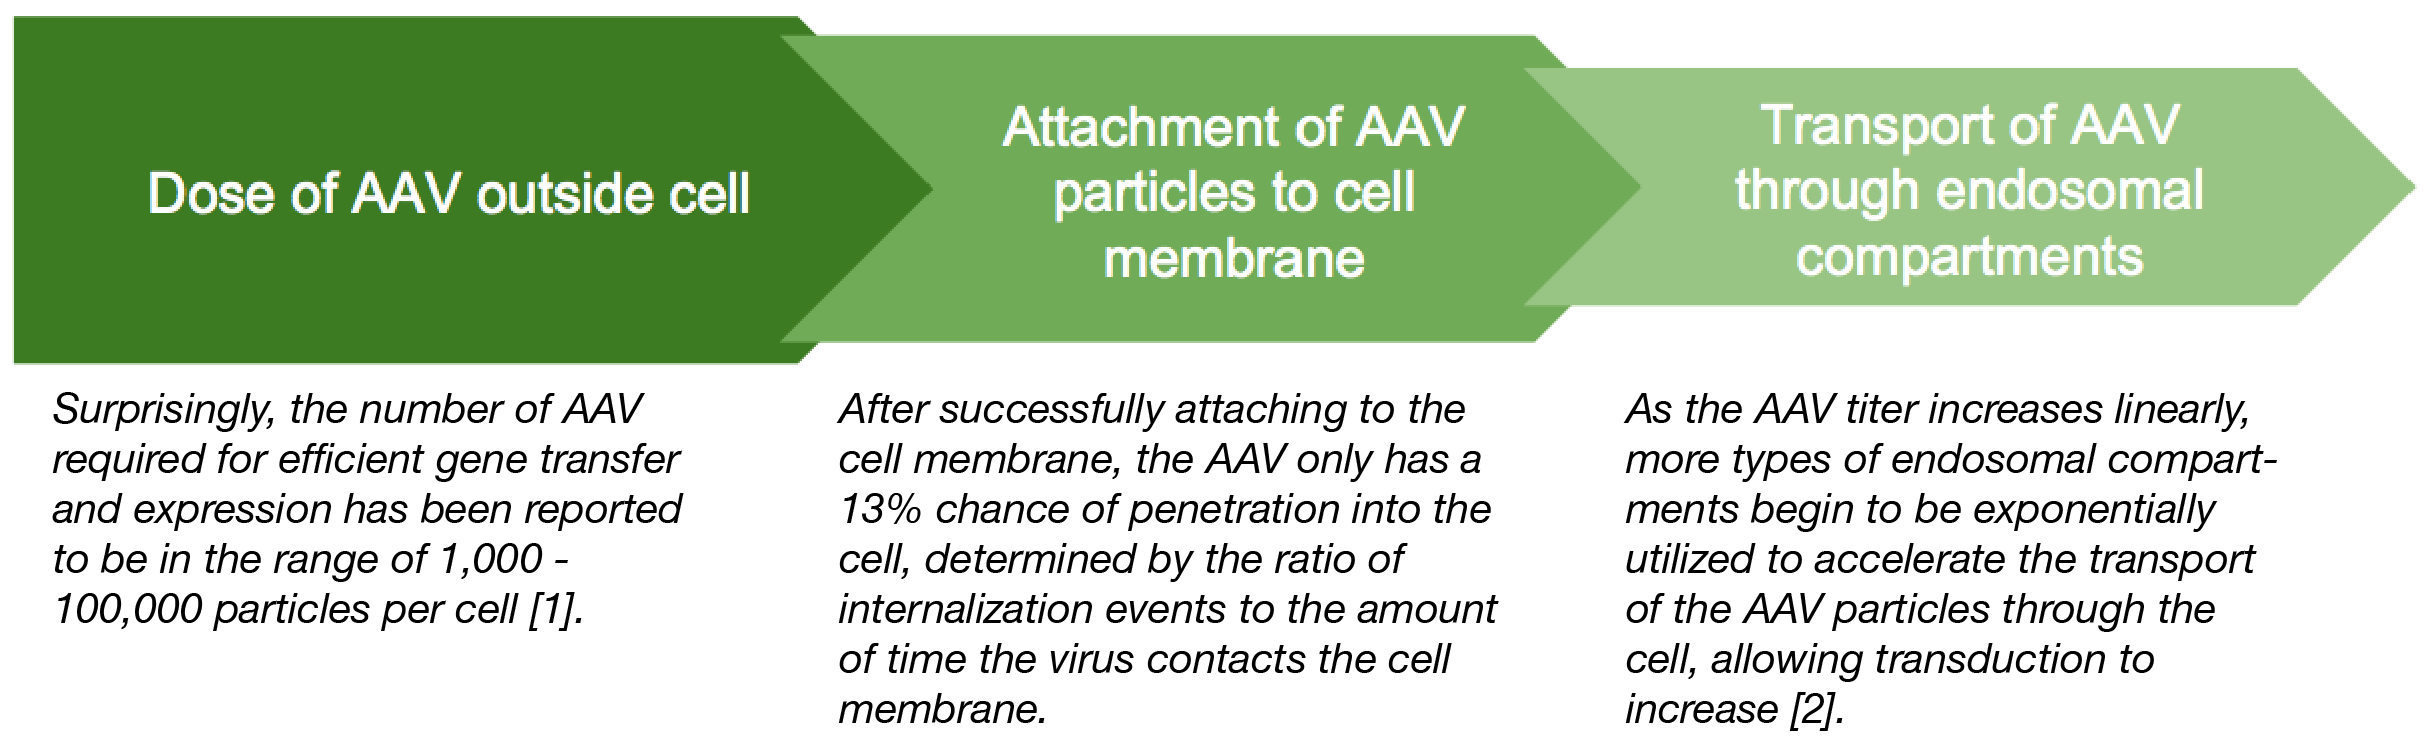 AAV Infection Flow Chart